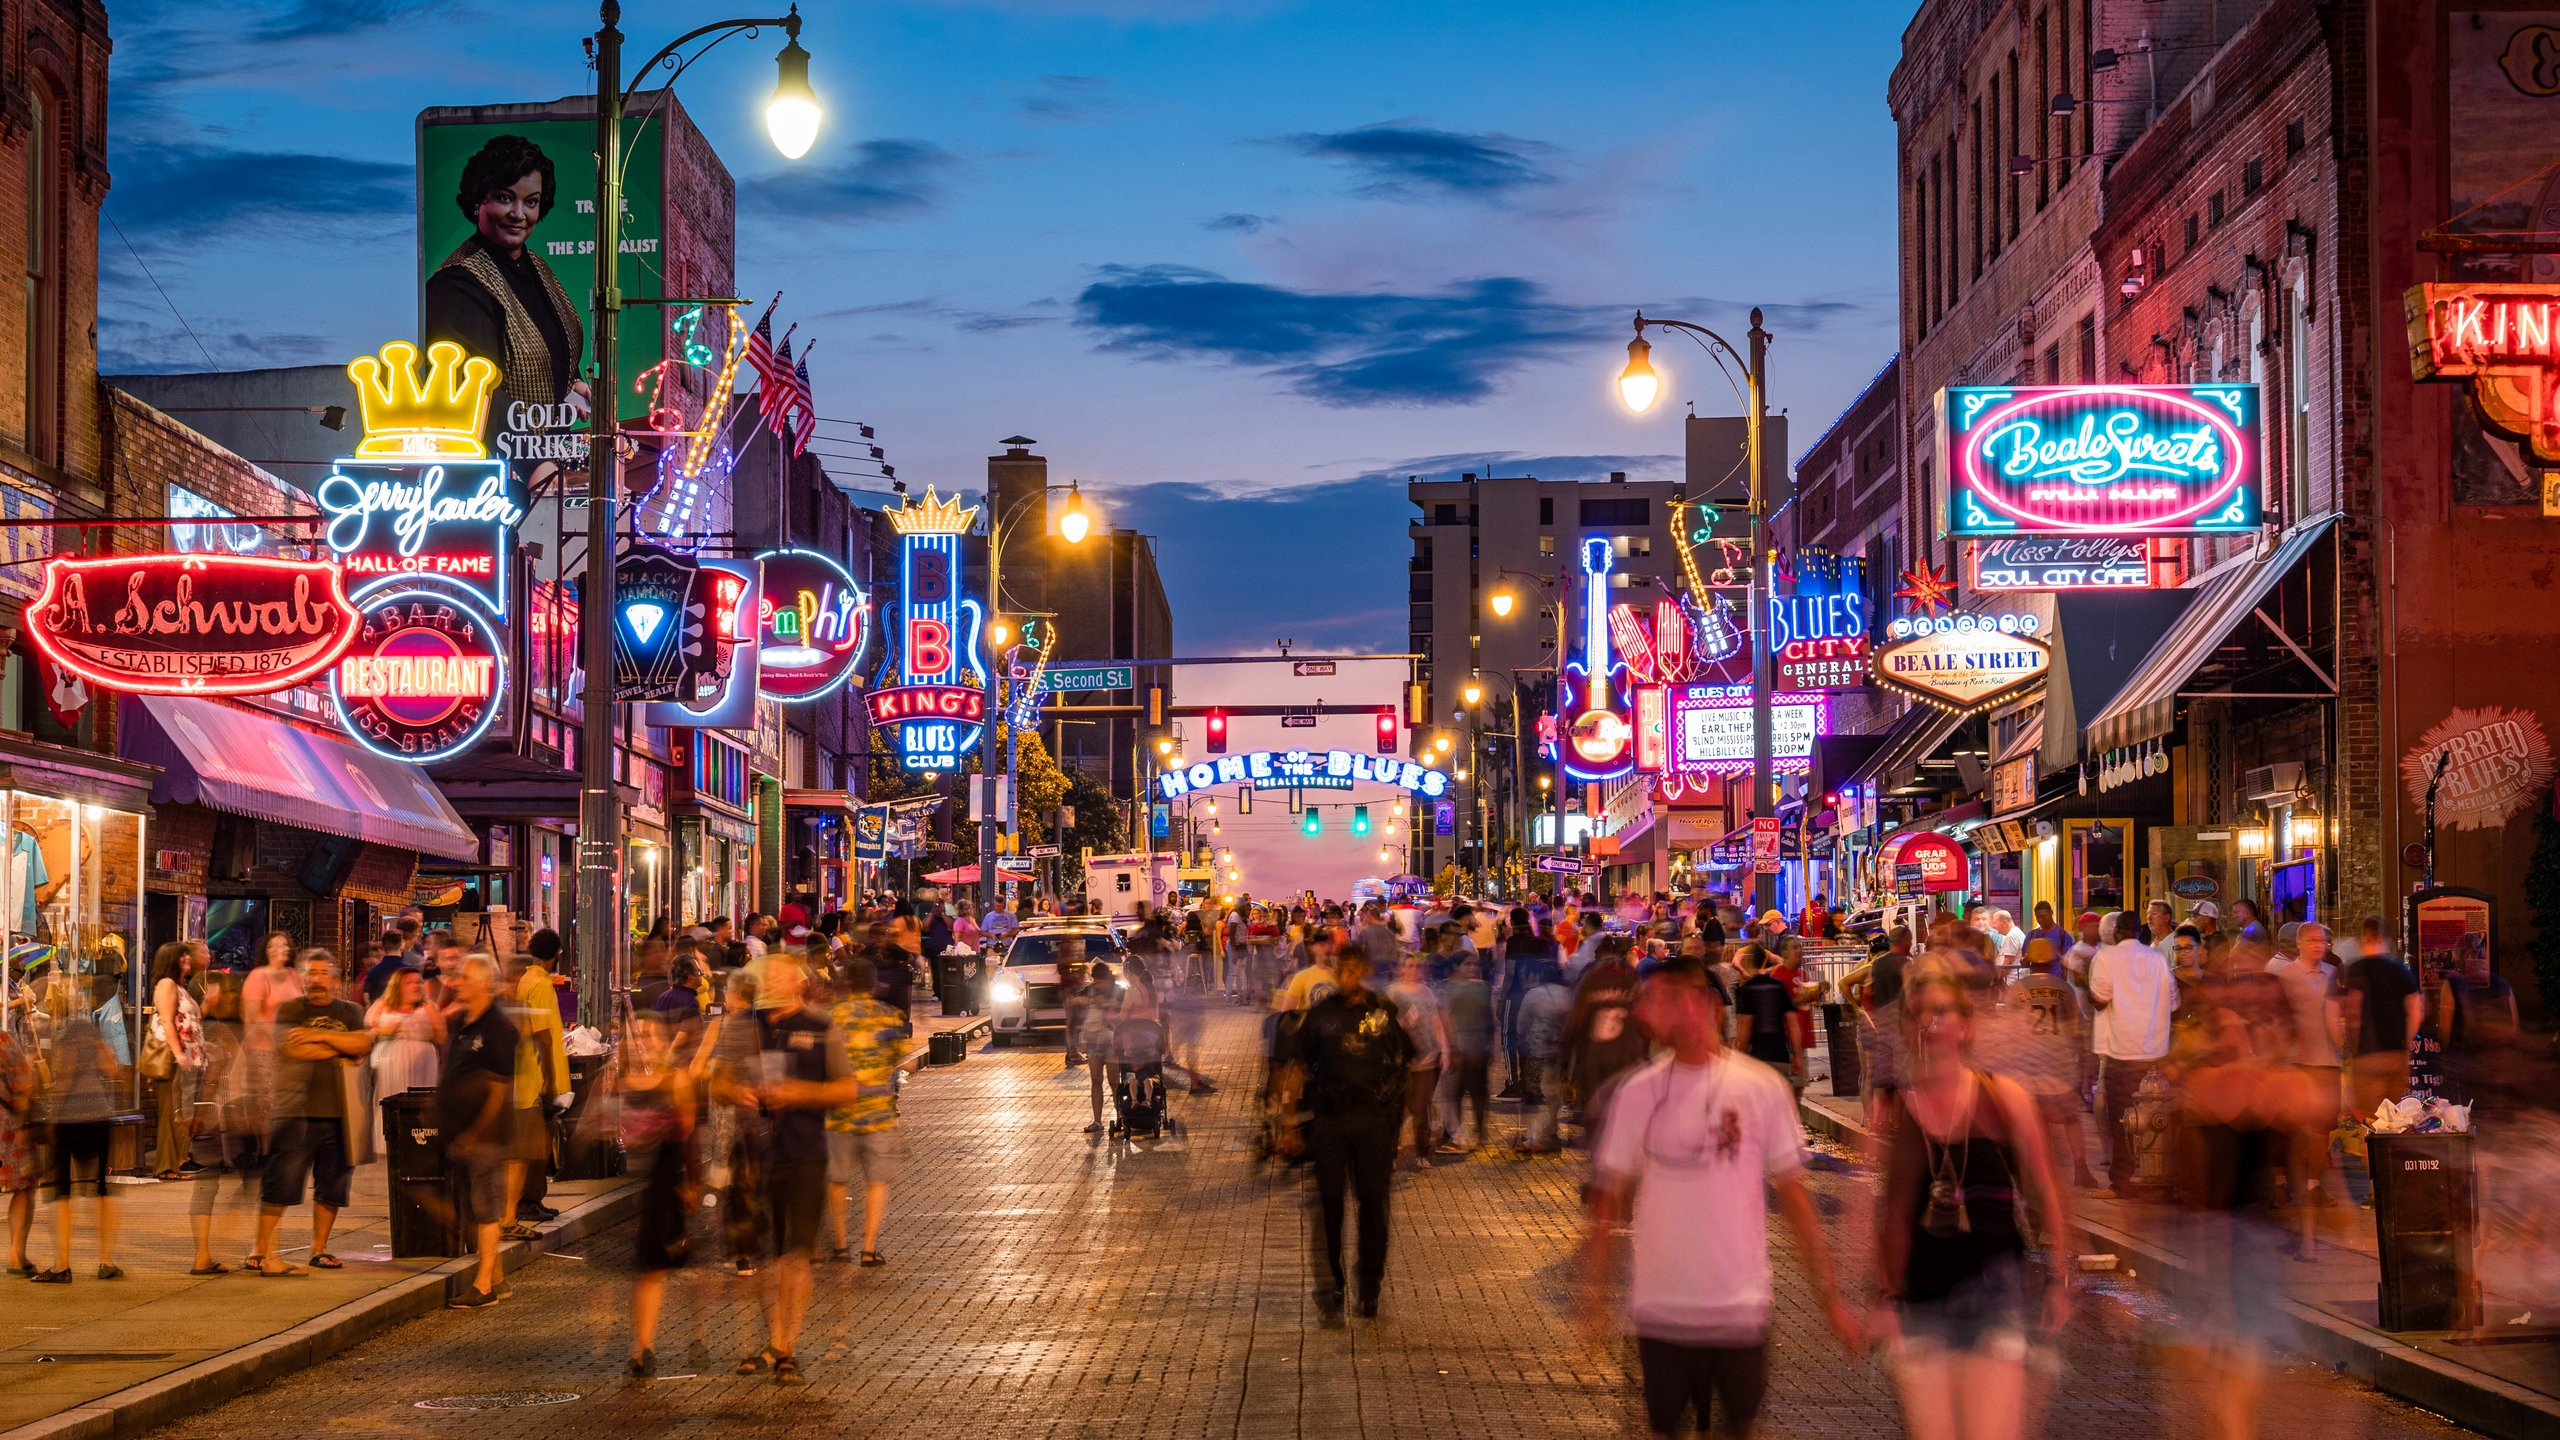 Downtown Memphis, Memphis, Tennessee, United States of America